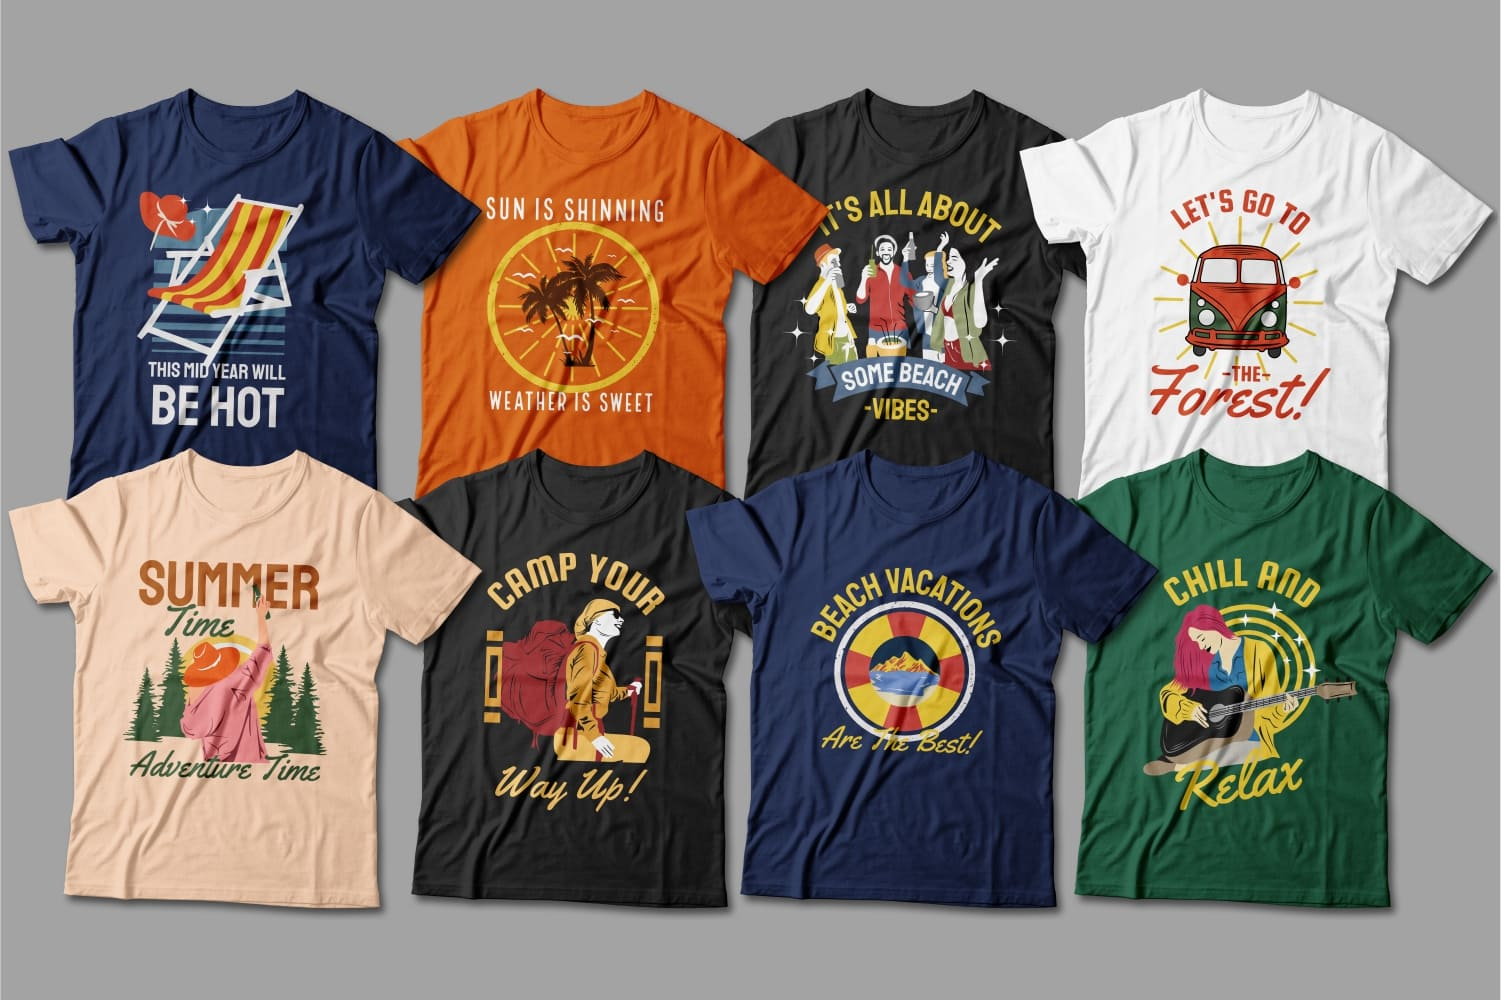 Summer T-shirts in different colors with bright prints.